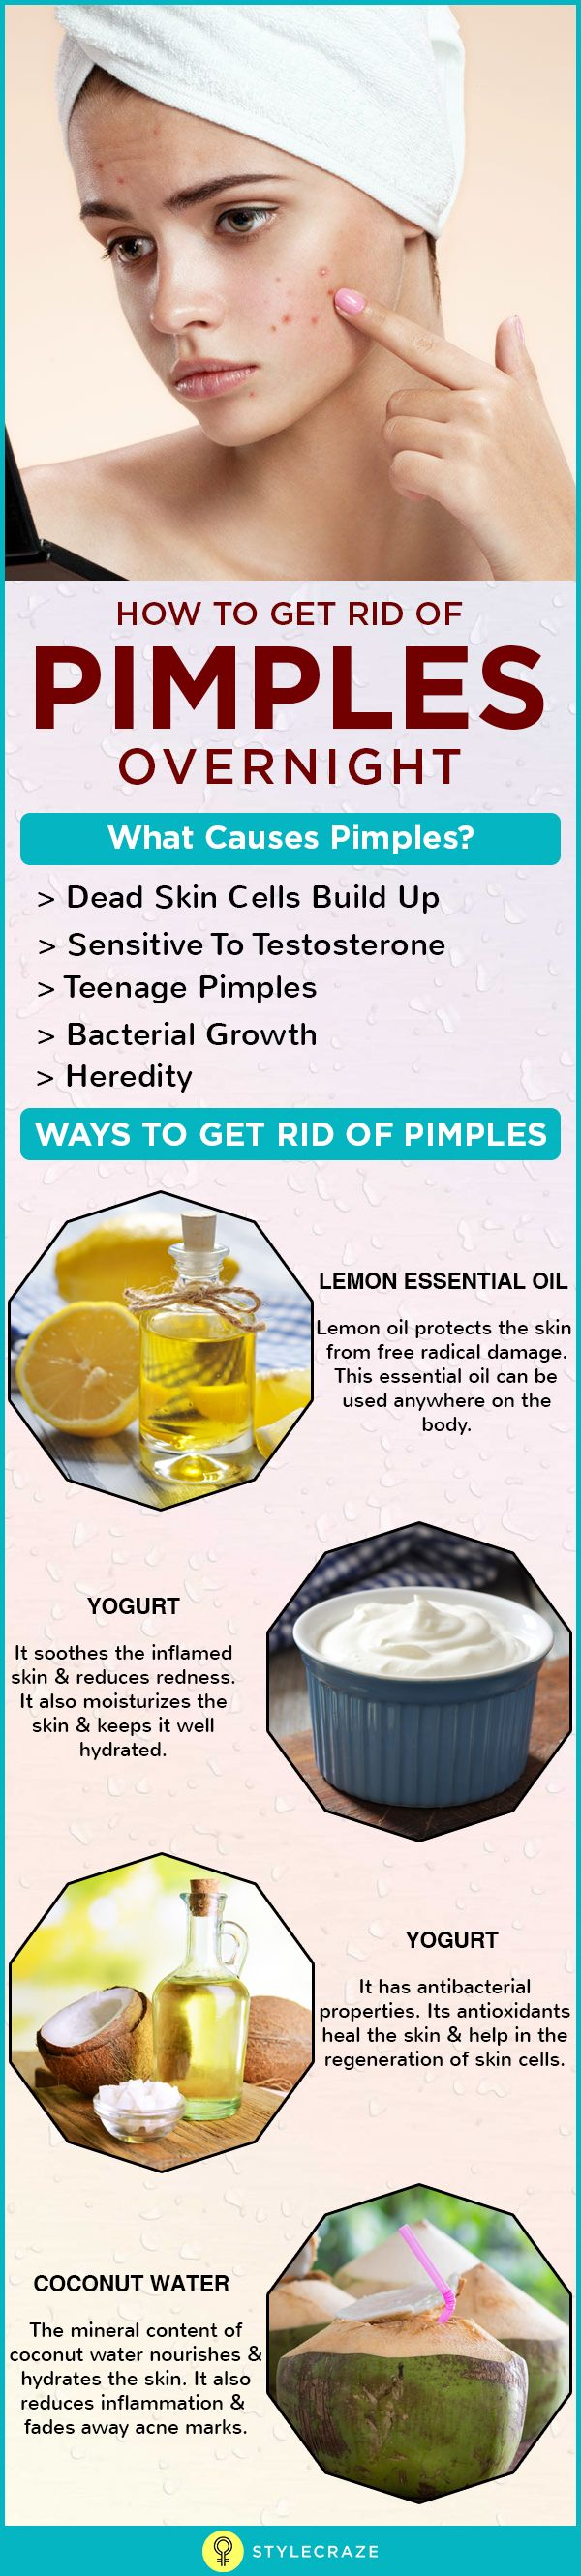 Pimples or acne are skin lesions/inflammations that occur when the sebaceous glands (oil glands) of the skin get infected with bacteria and swell up. Pimples are also known as pustules or papules, spots, and zits. The sebaceous glands that are present thr